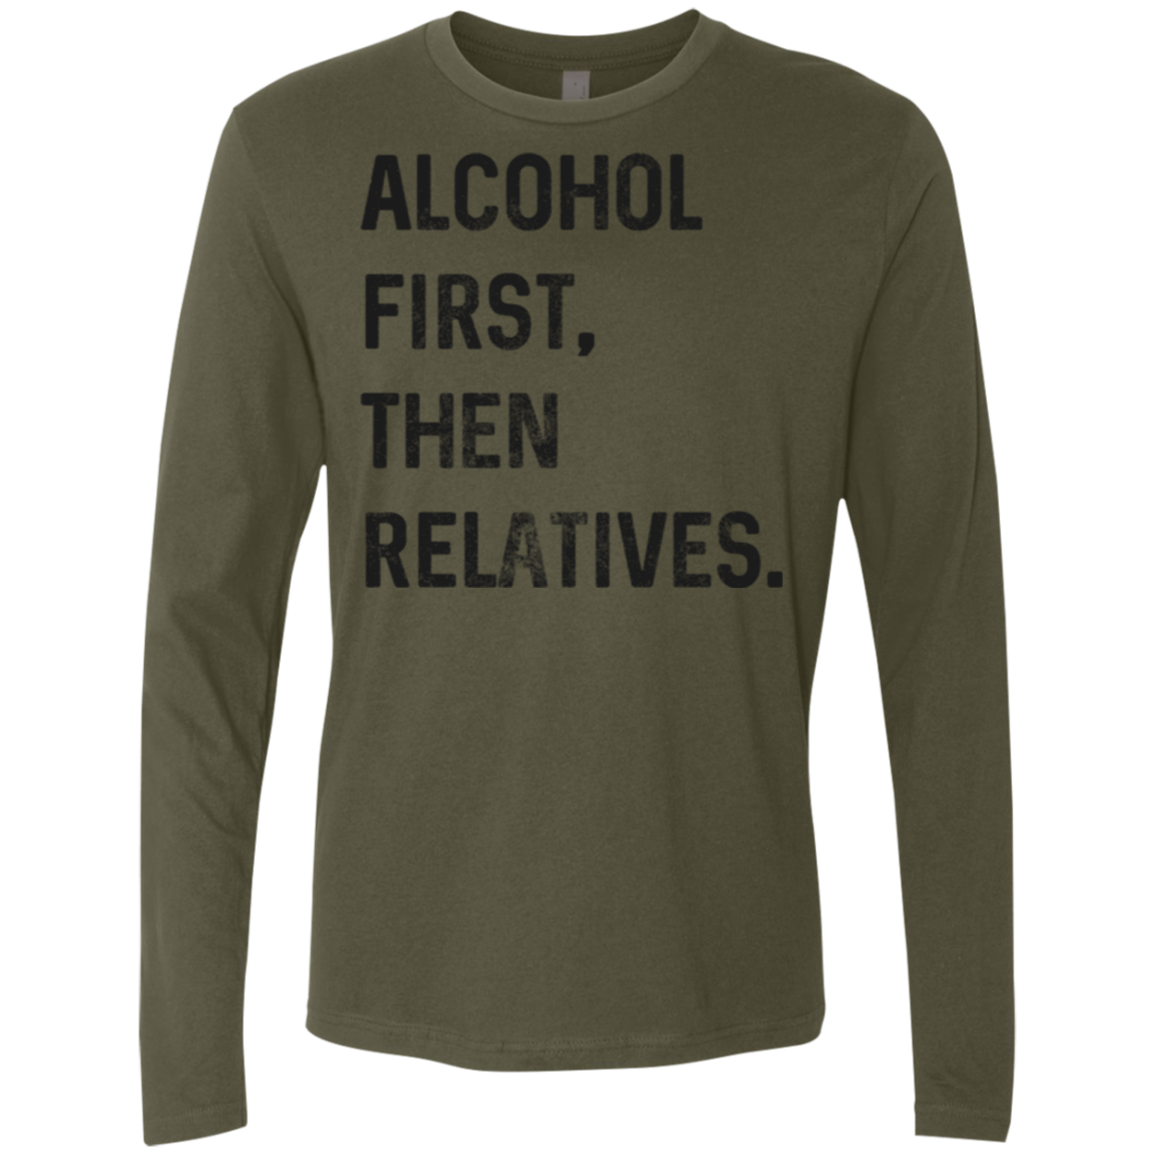 Alcohol First then Relatives Men's Long Sleeve Tee - Trendy Tees